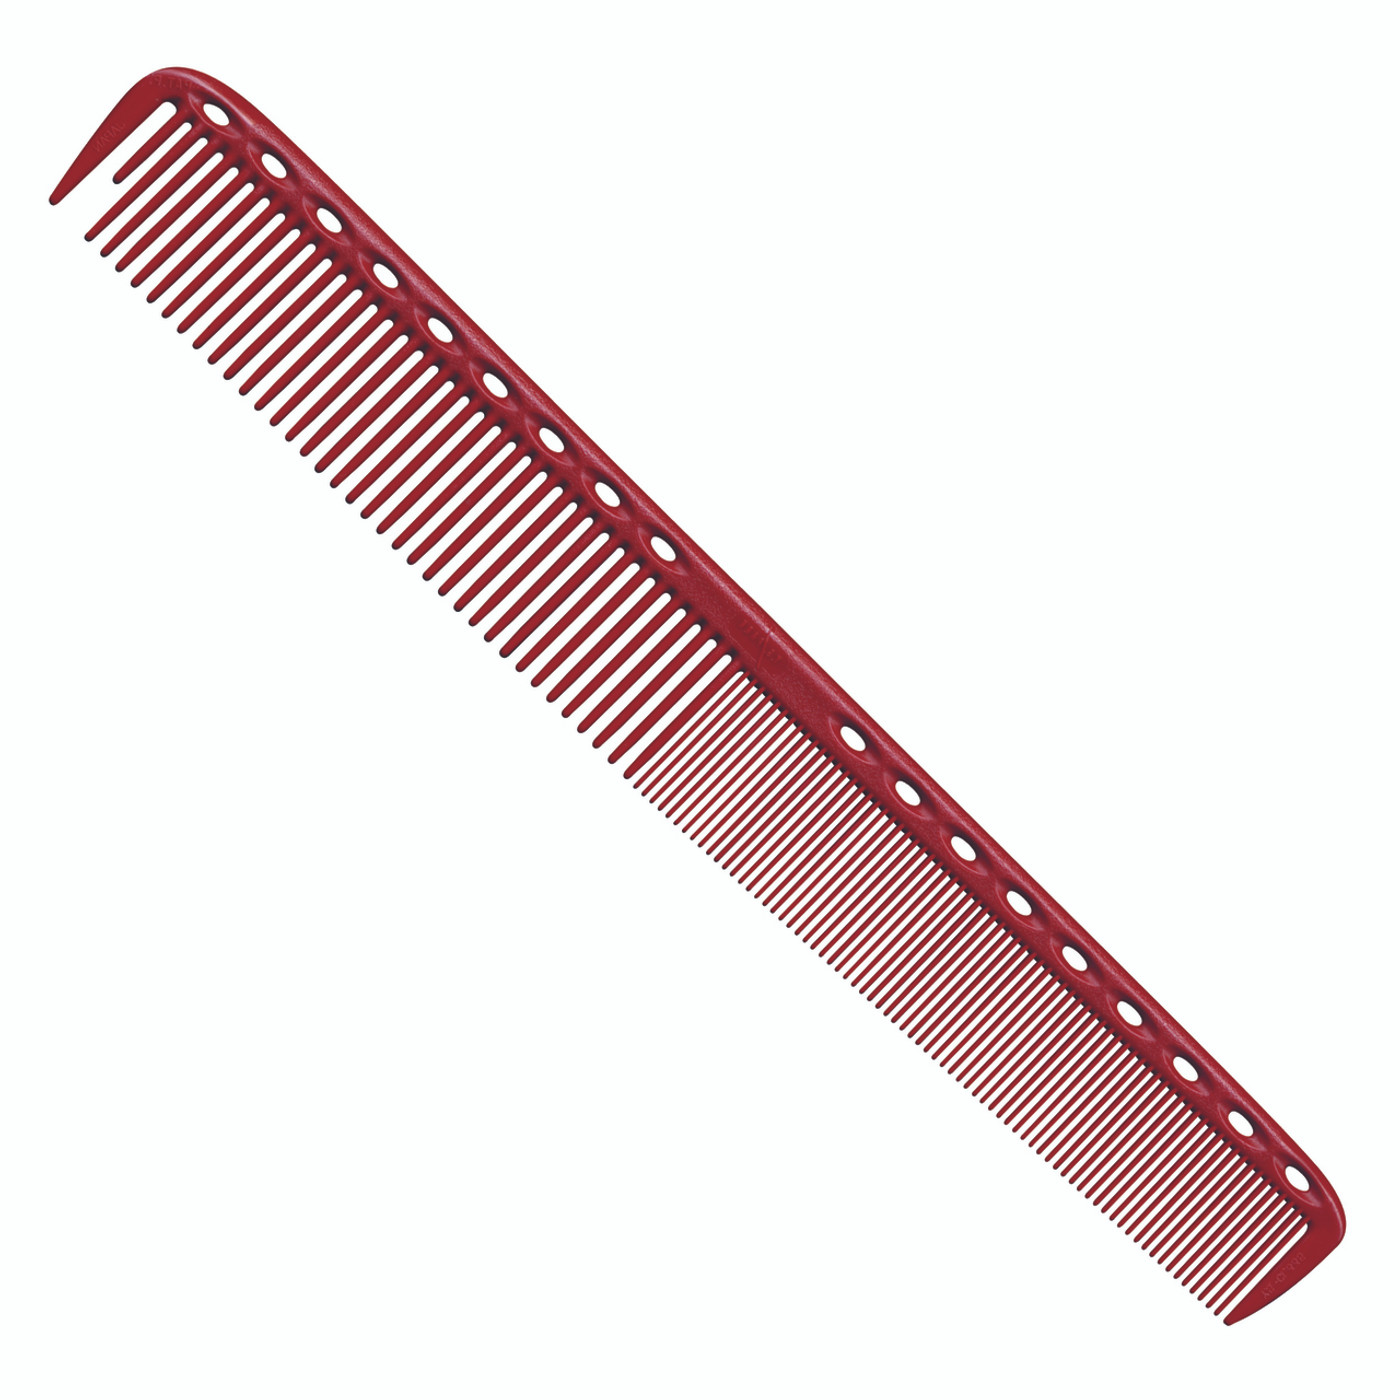 YS Park 335 Long Fine Tooth Cutting Comb - Red